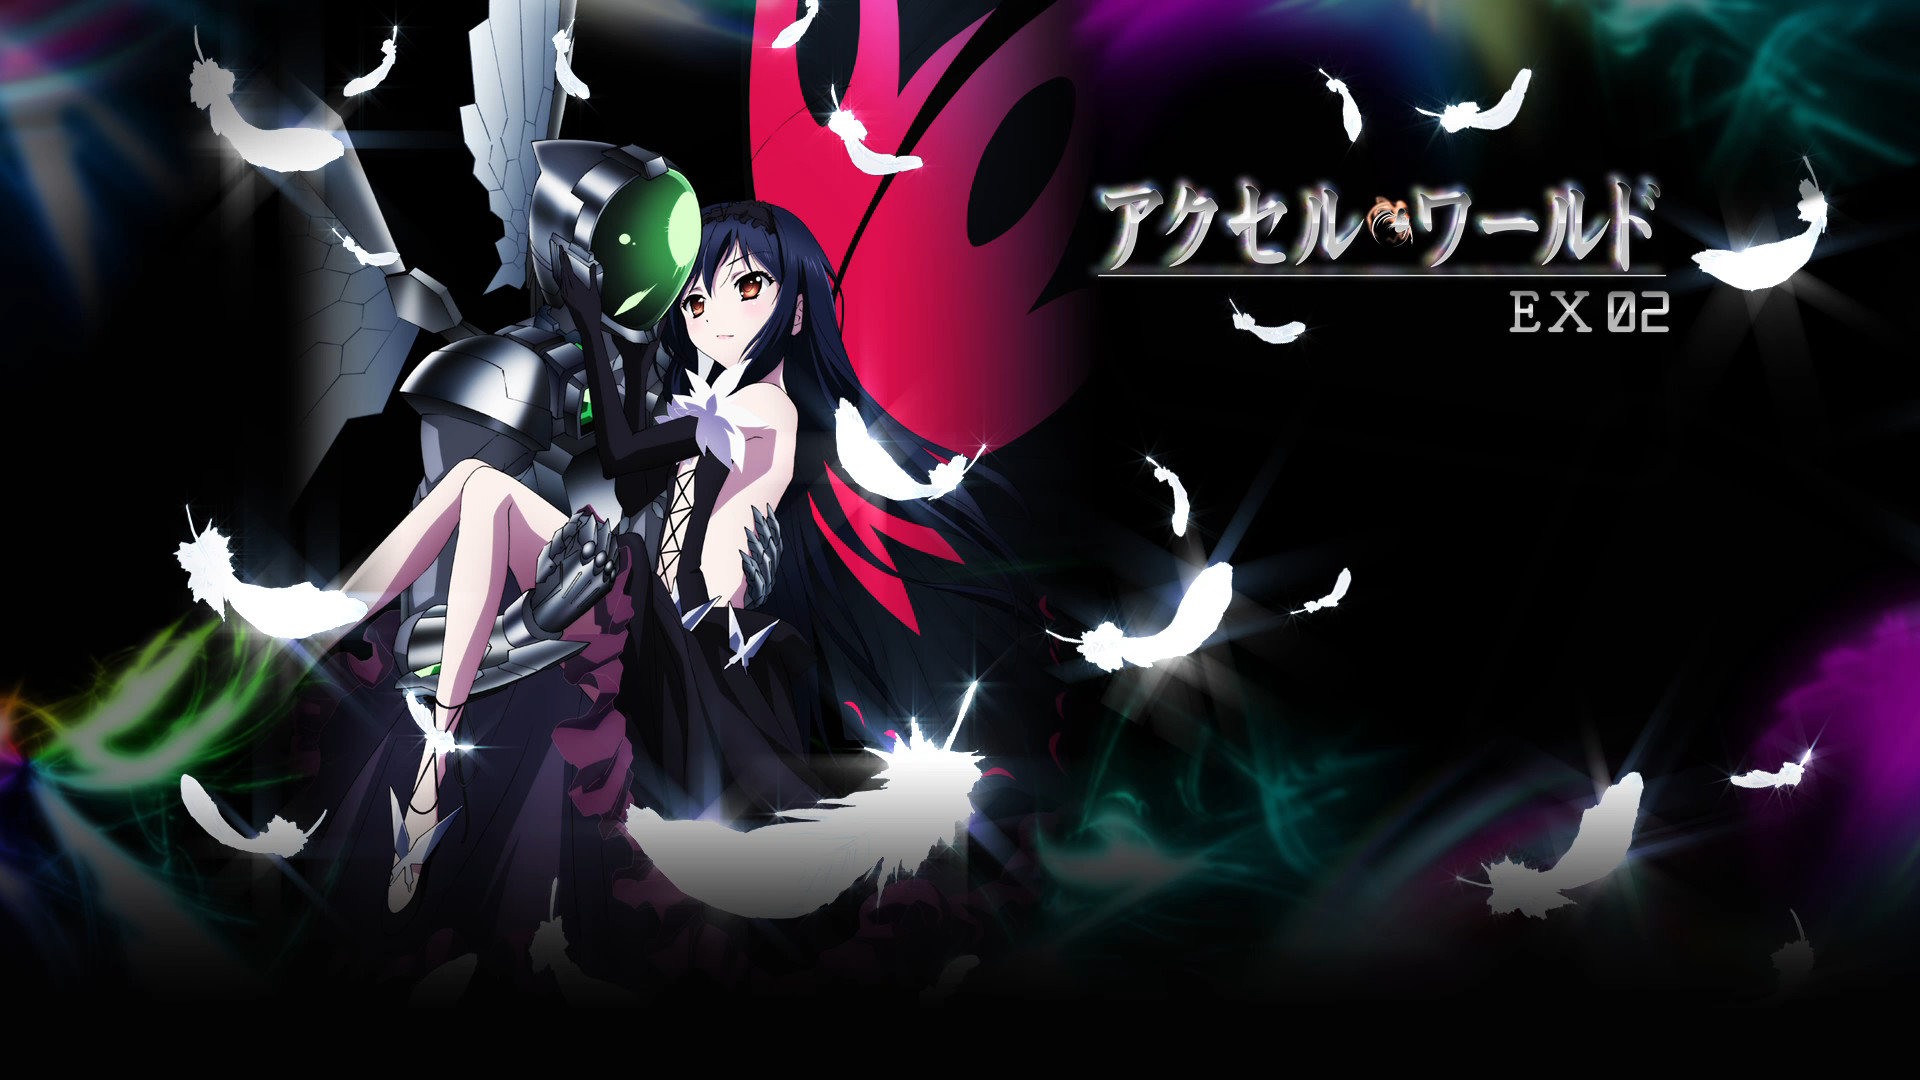 Awesome Kuroyukihime (Accel World) free wallpaper ID:247866 for full hd 1080p computer